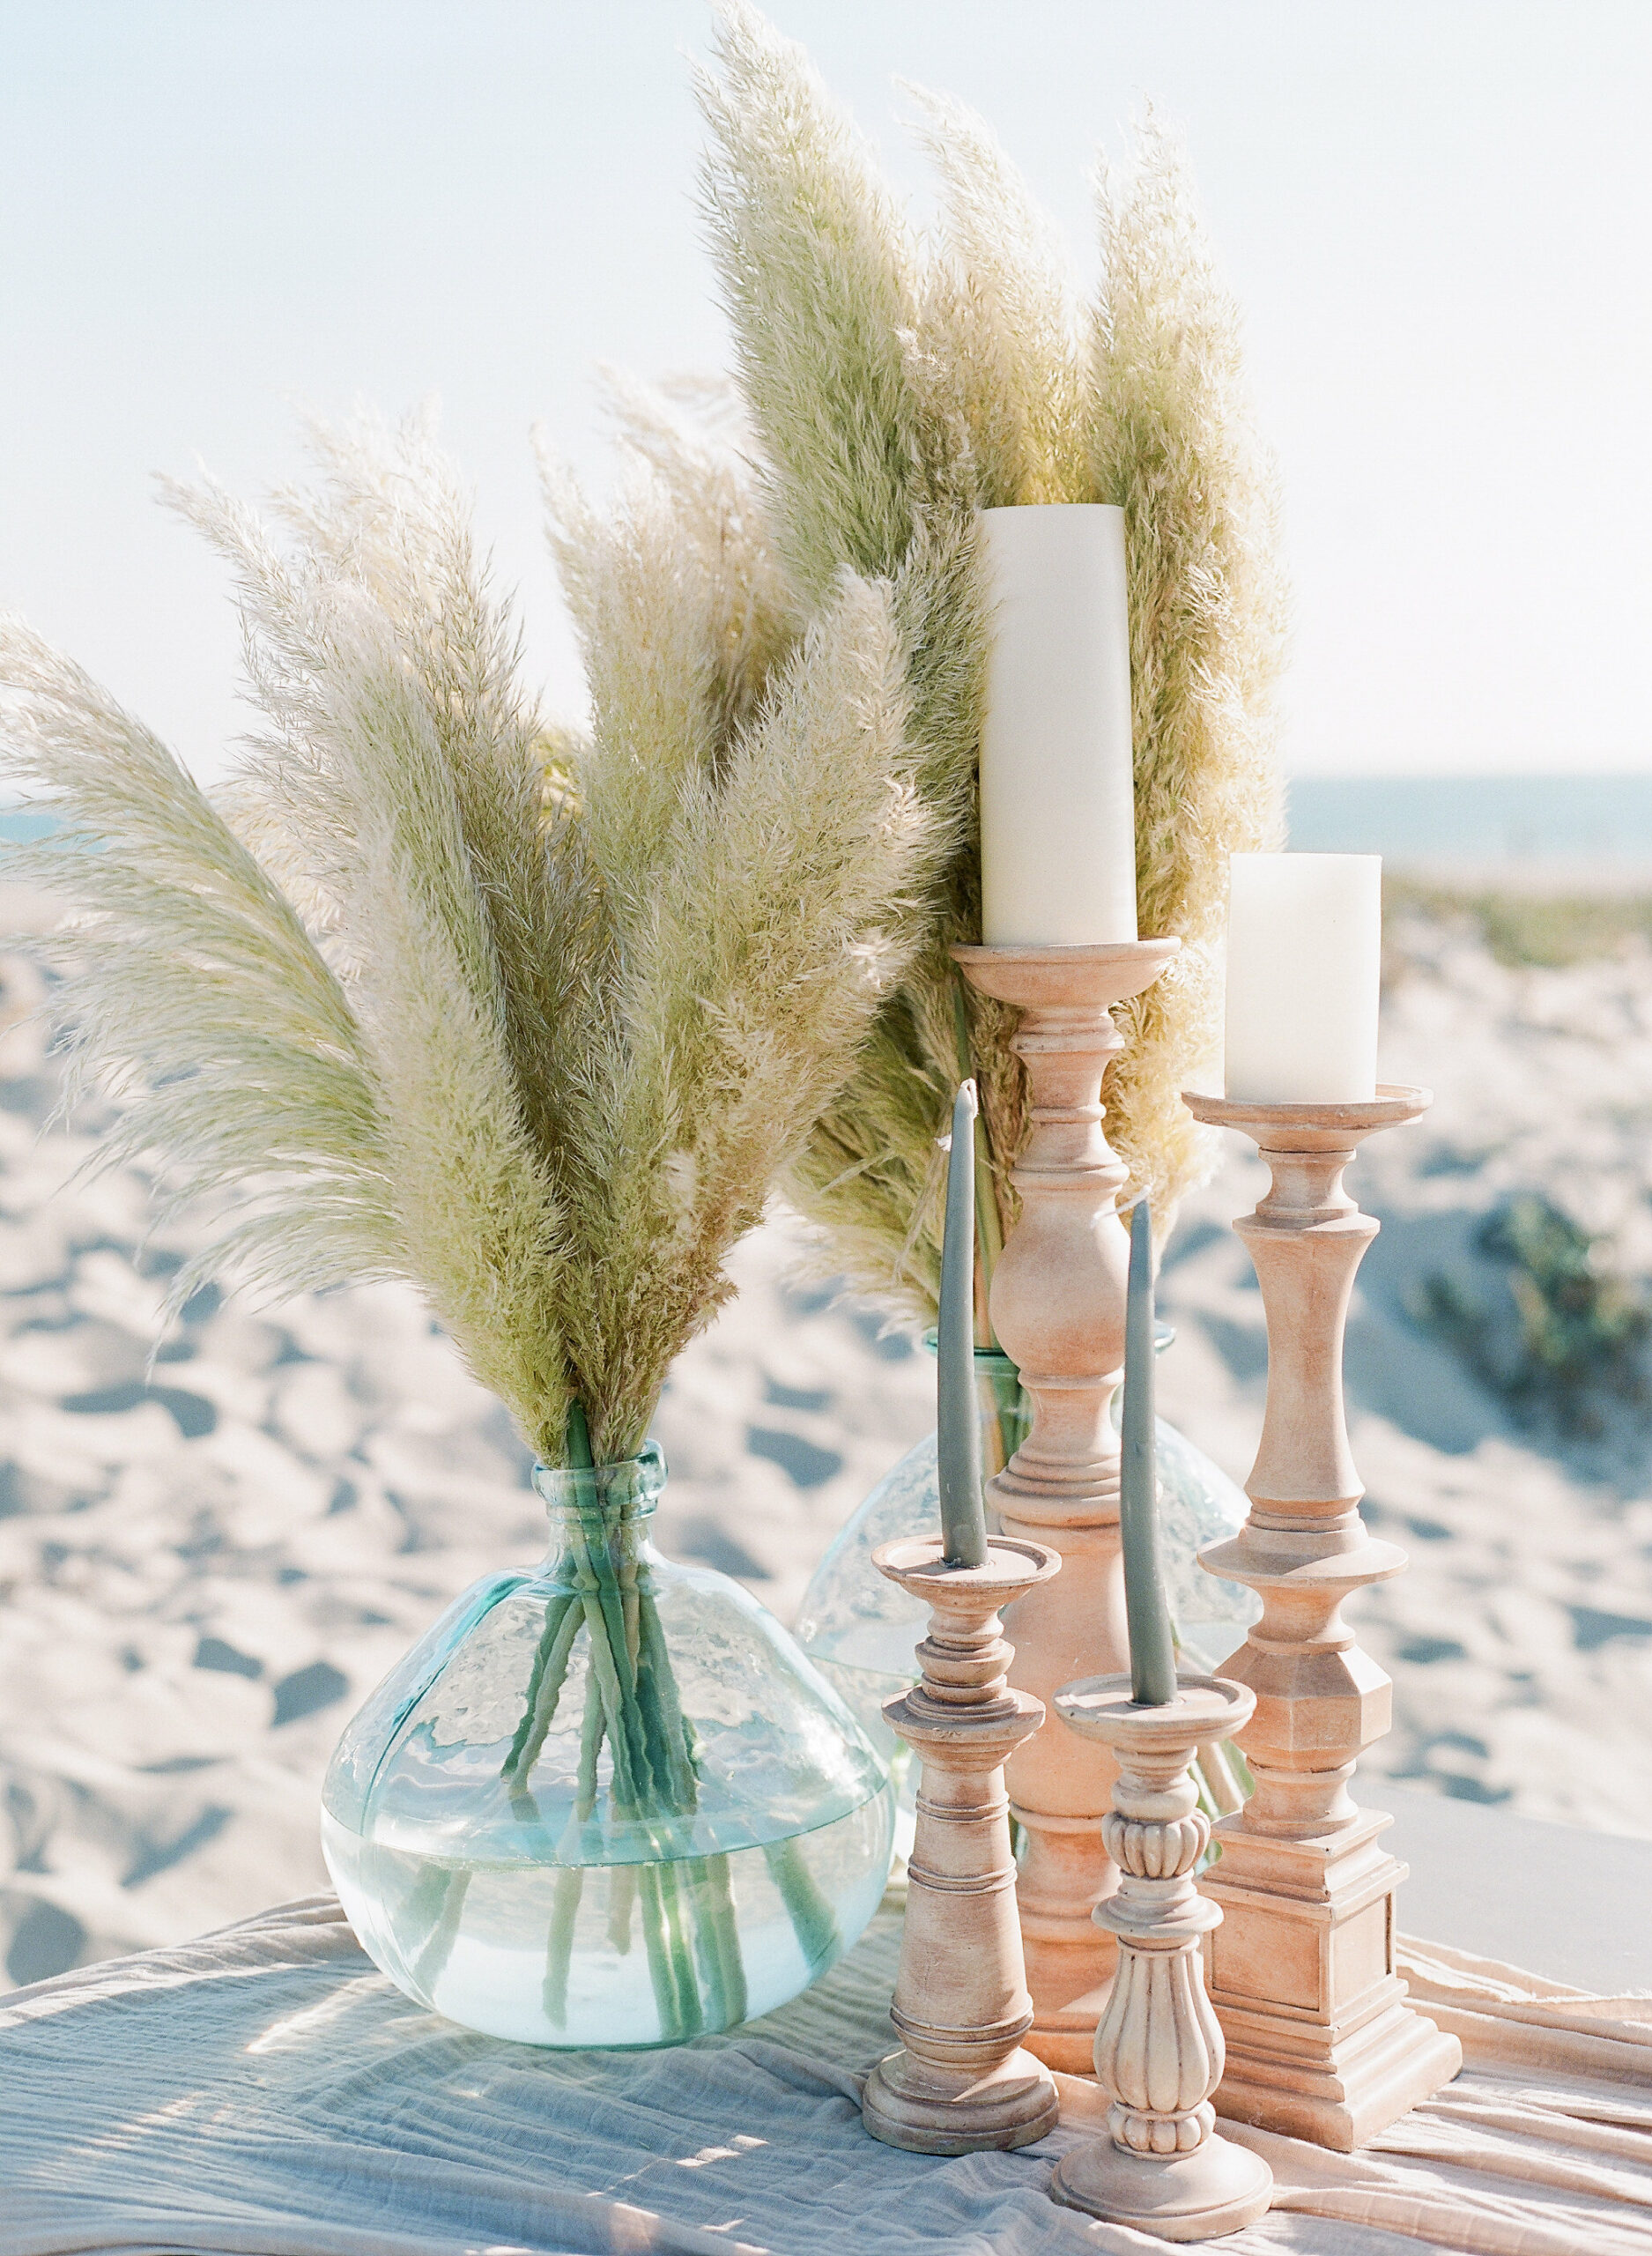 Beach Chic Wedding Inspiration - XOXO BRIDE Events